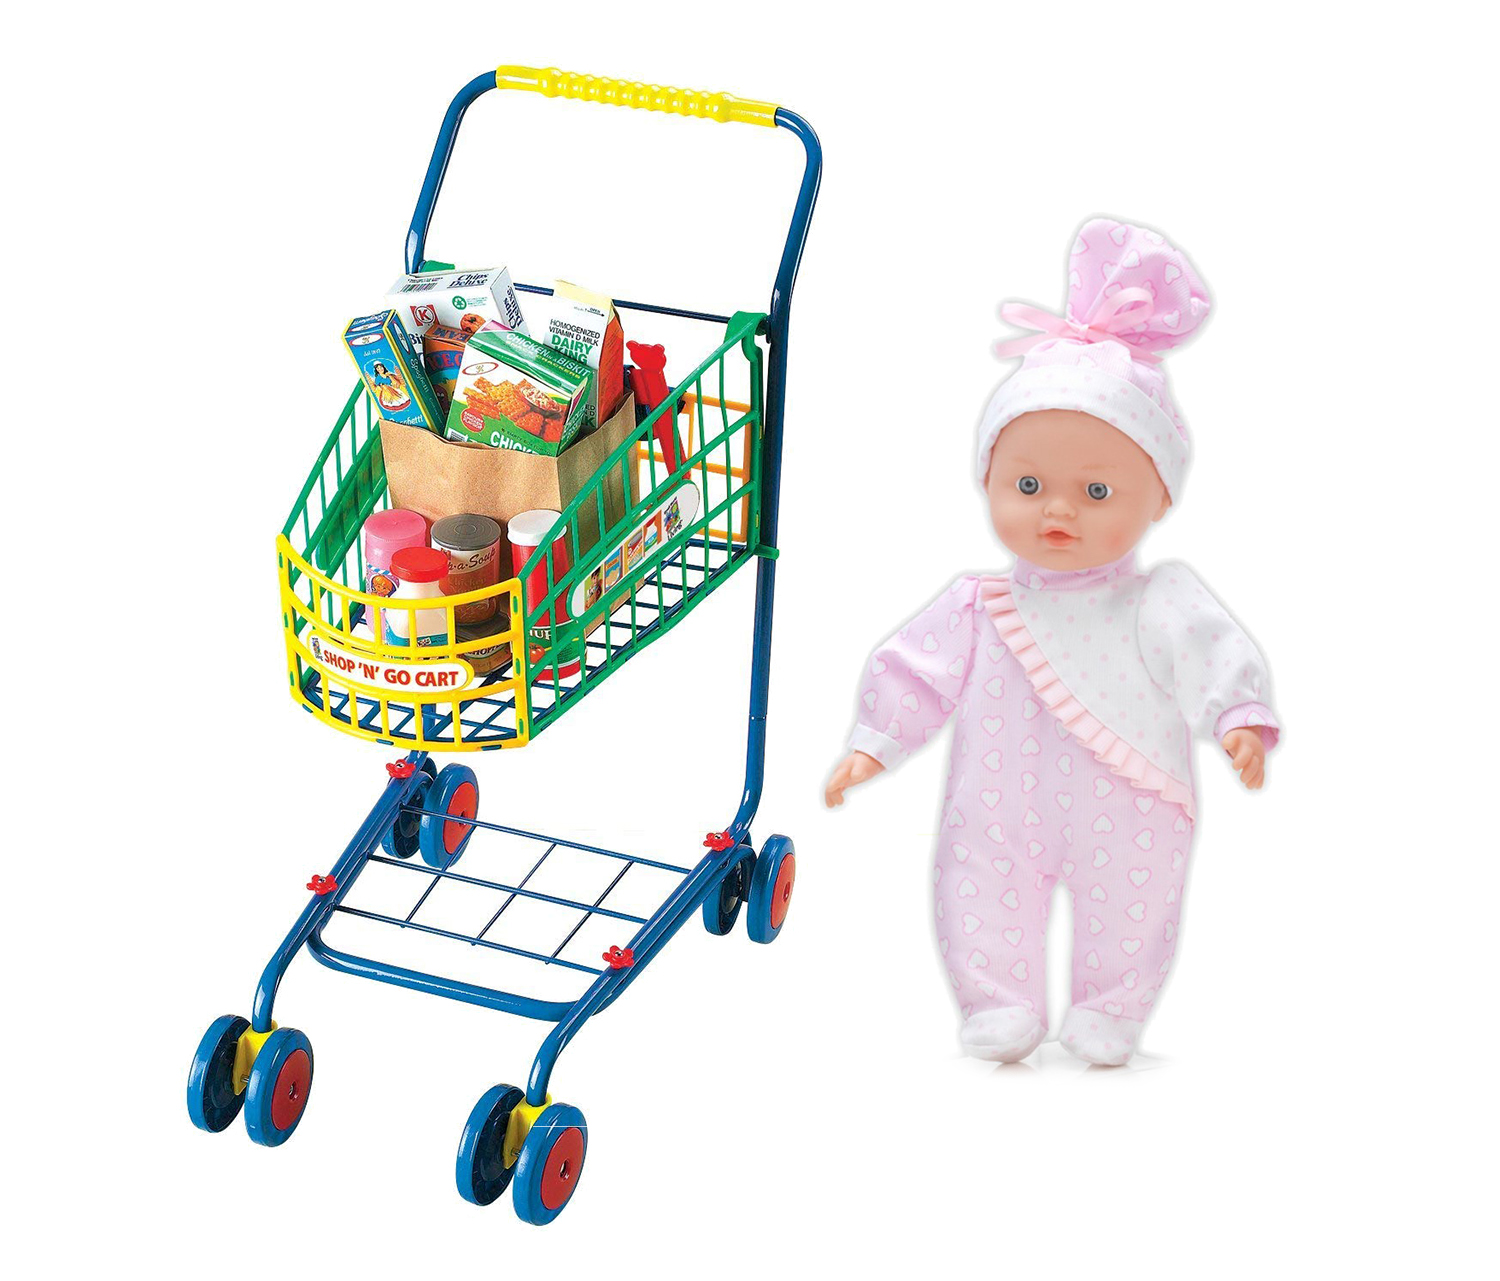 Mozlly Small World Toys Living Shop N Go Shopping Cart (10pc Set) and Mozlly Small World Toys All About Baby... by Small World Toys